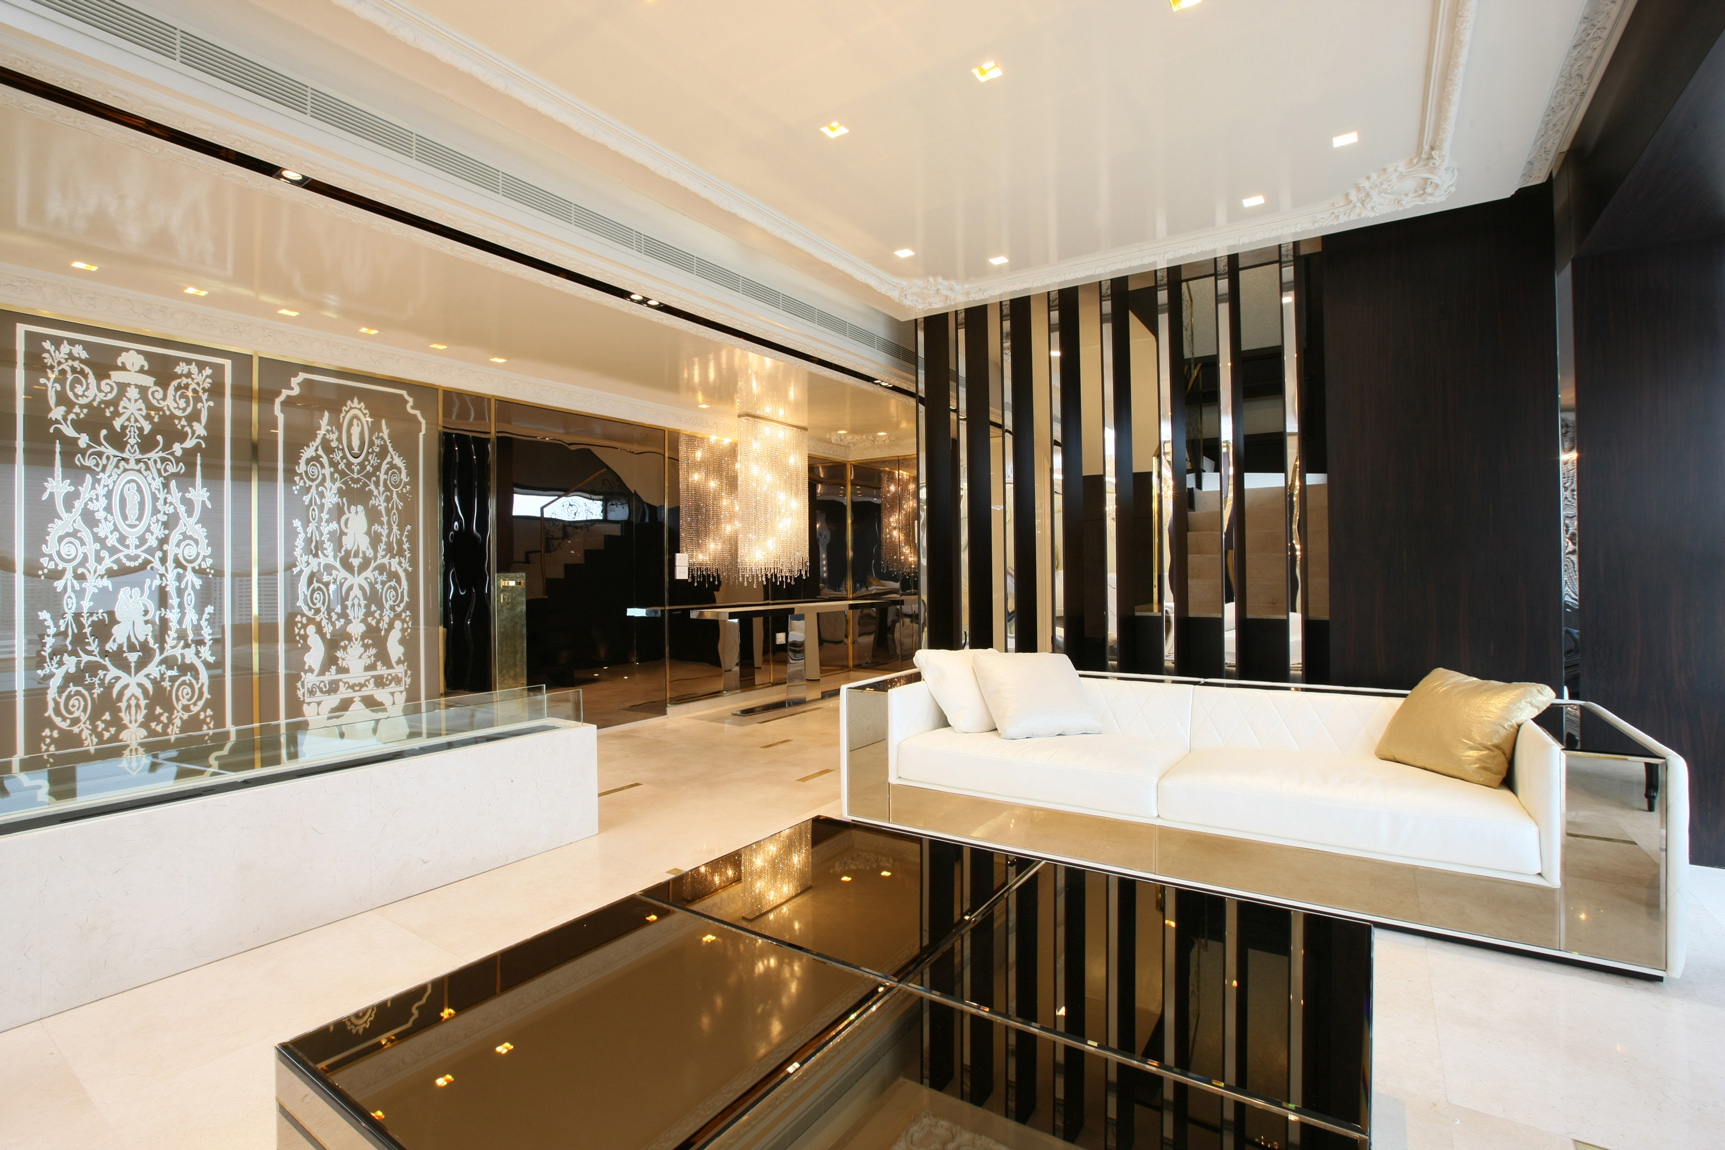 Apartment m by adg interiors - Luxury interior ...